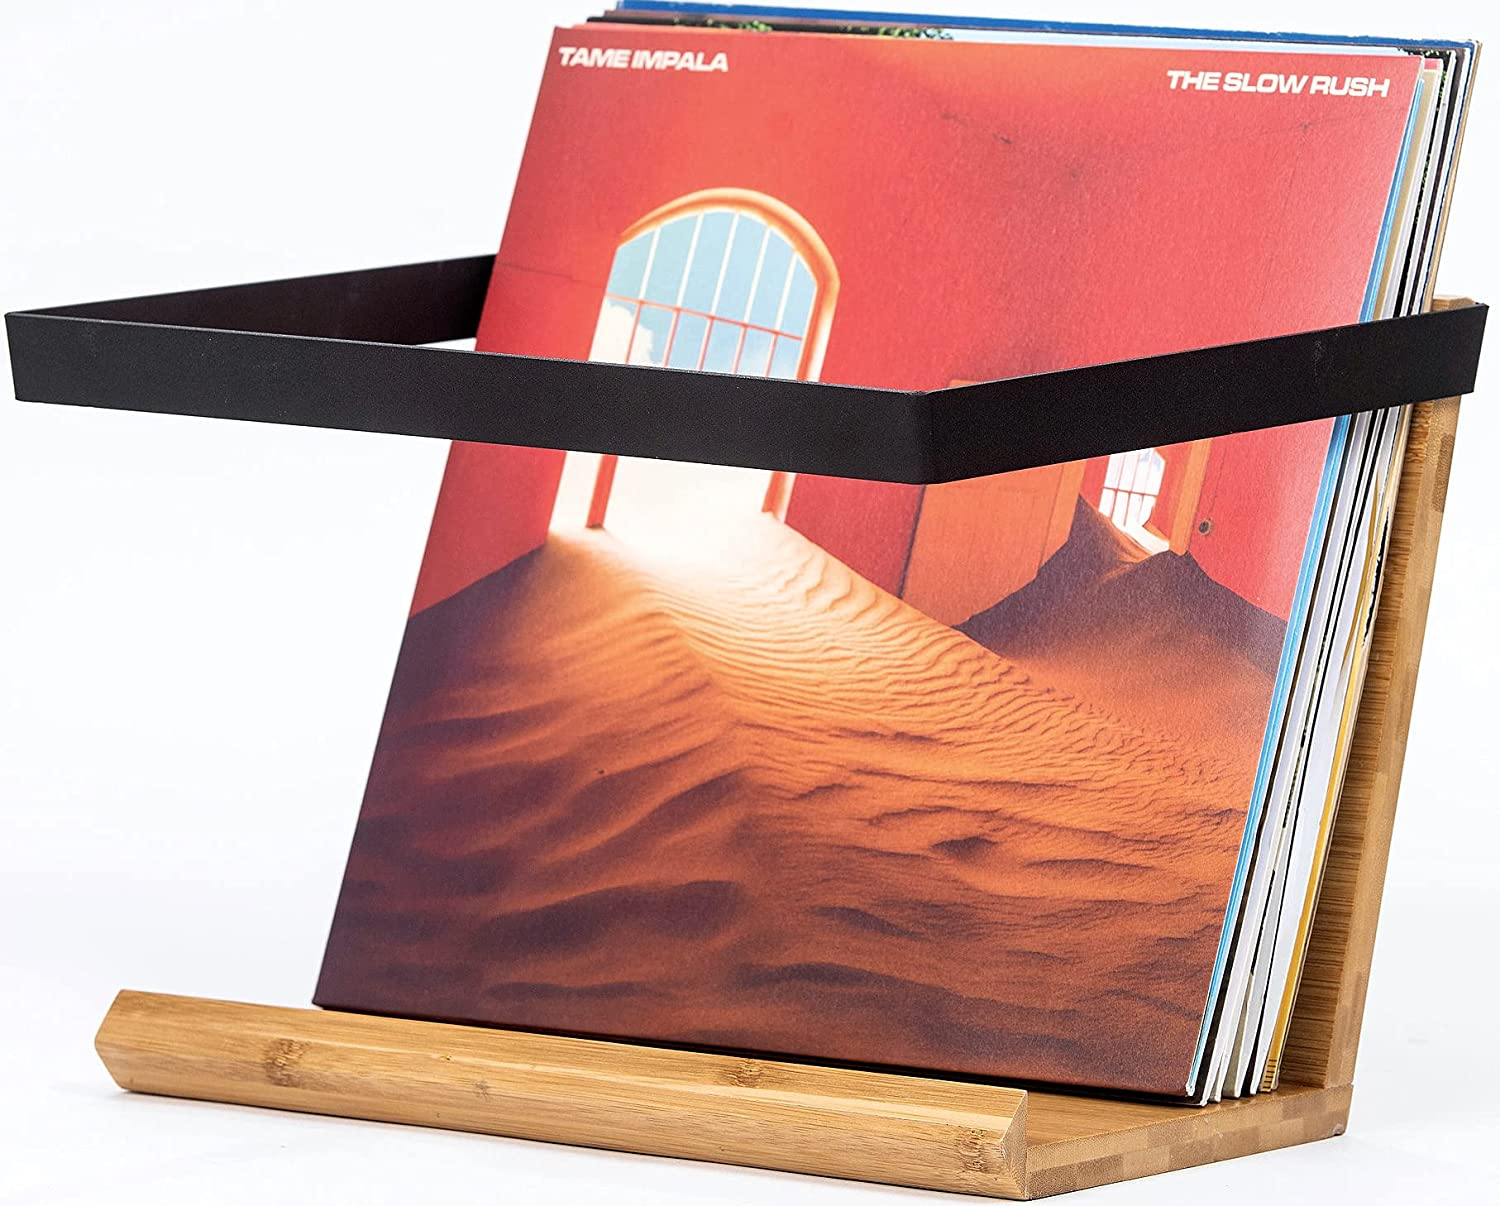 Vinyl Record Storage Display – Modern Exotic Album Storage Rack and Display Stand – Great for Bookshelves with Room for 33 Records or Your Favorite Books by the SalCo Family Company, 11x12.75x9.4 in.